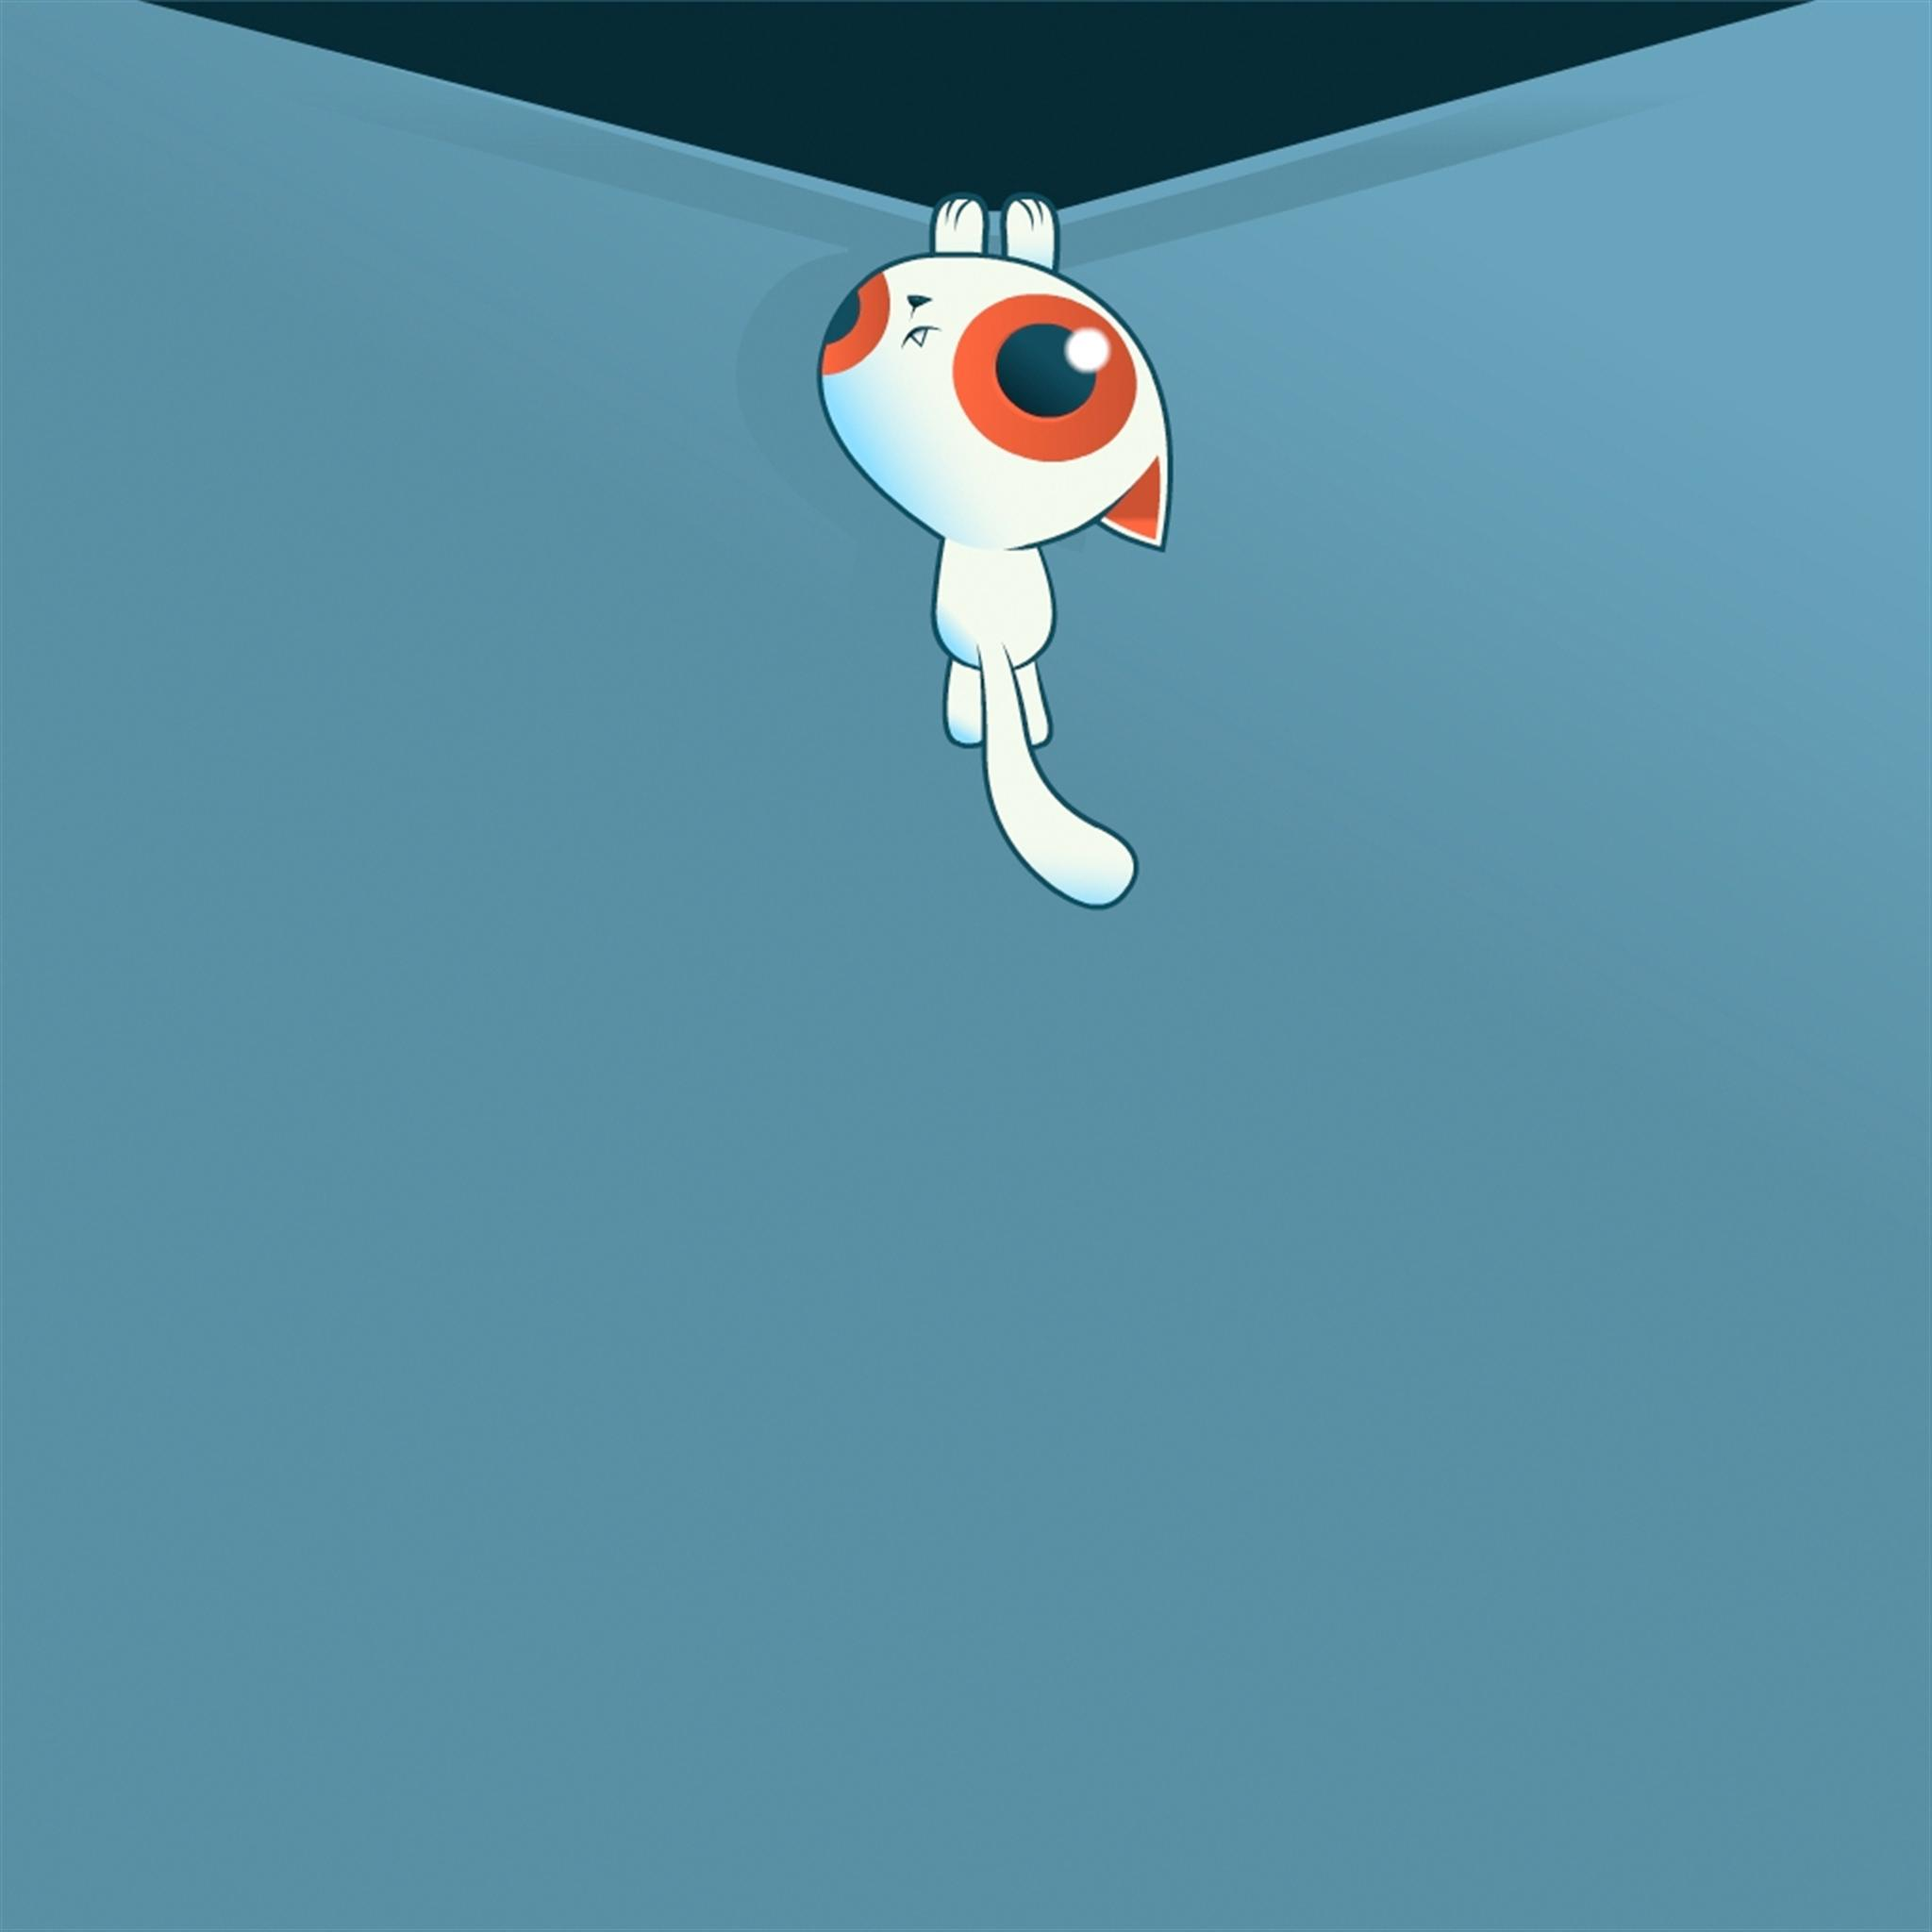 Funny Wallpapers For IPad Air